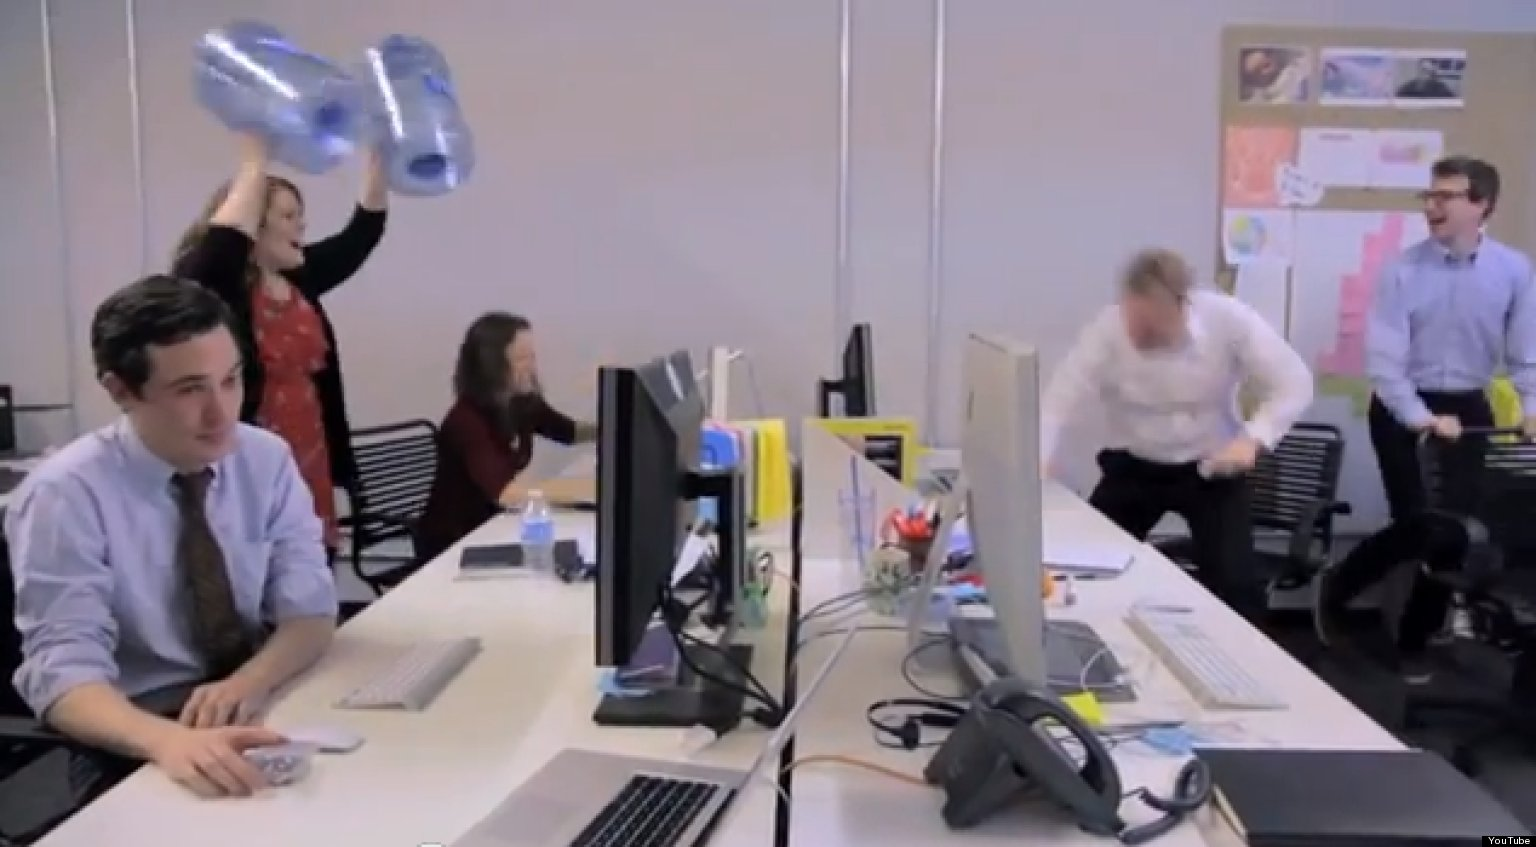 Stomp With Office Furniture Is Mostly Just Annoying